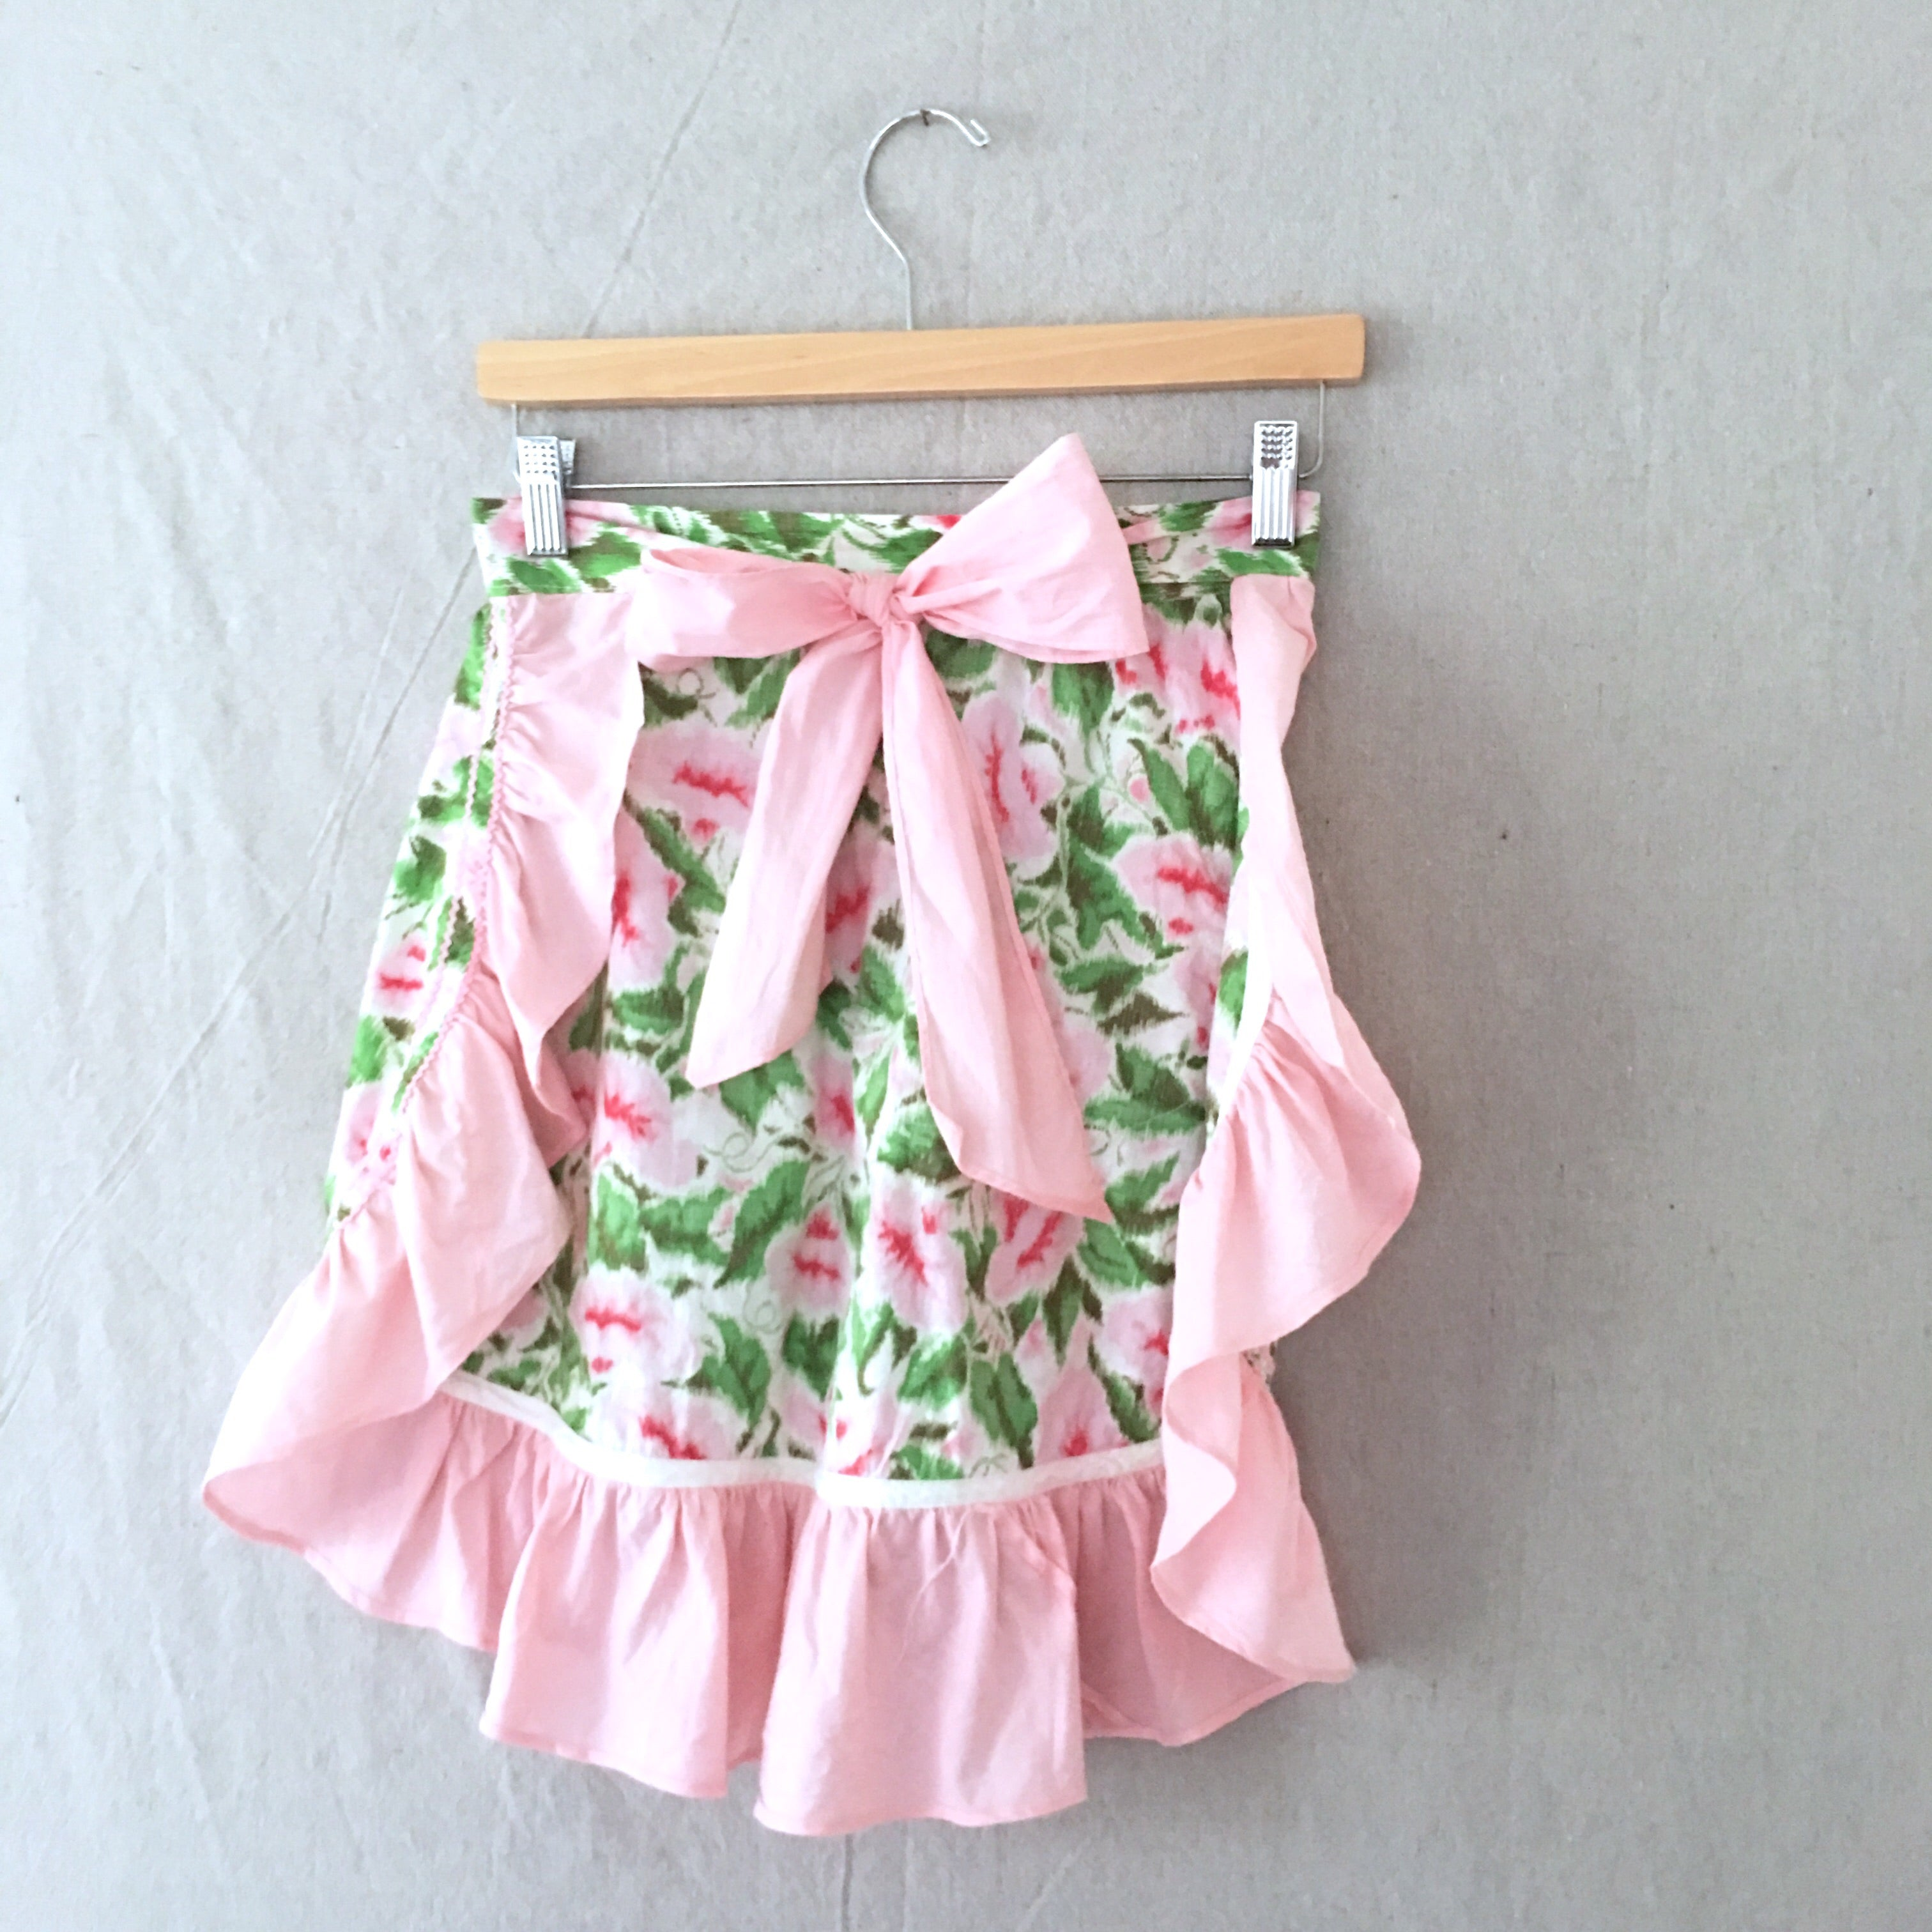 Apron - Pink & Green